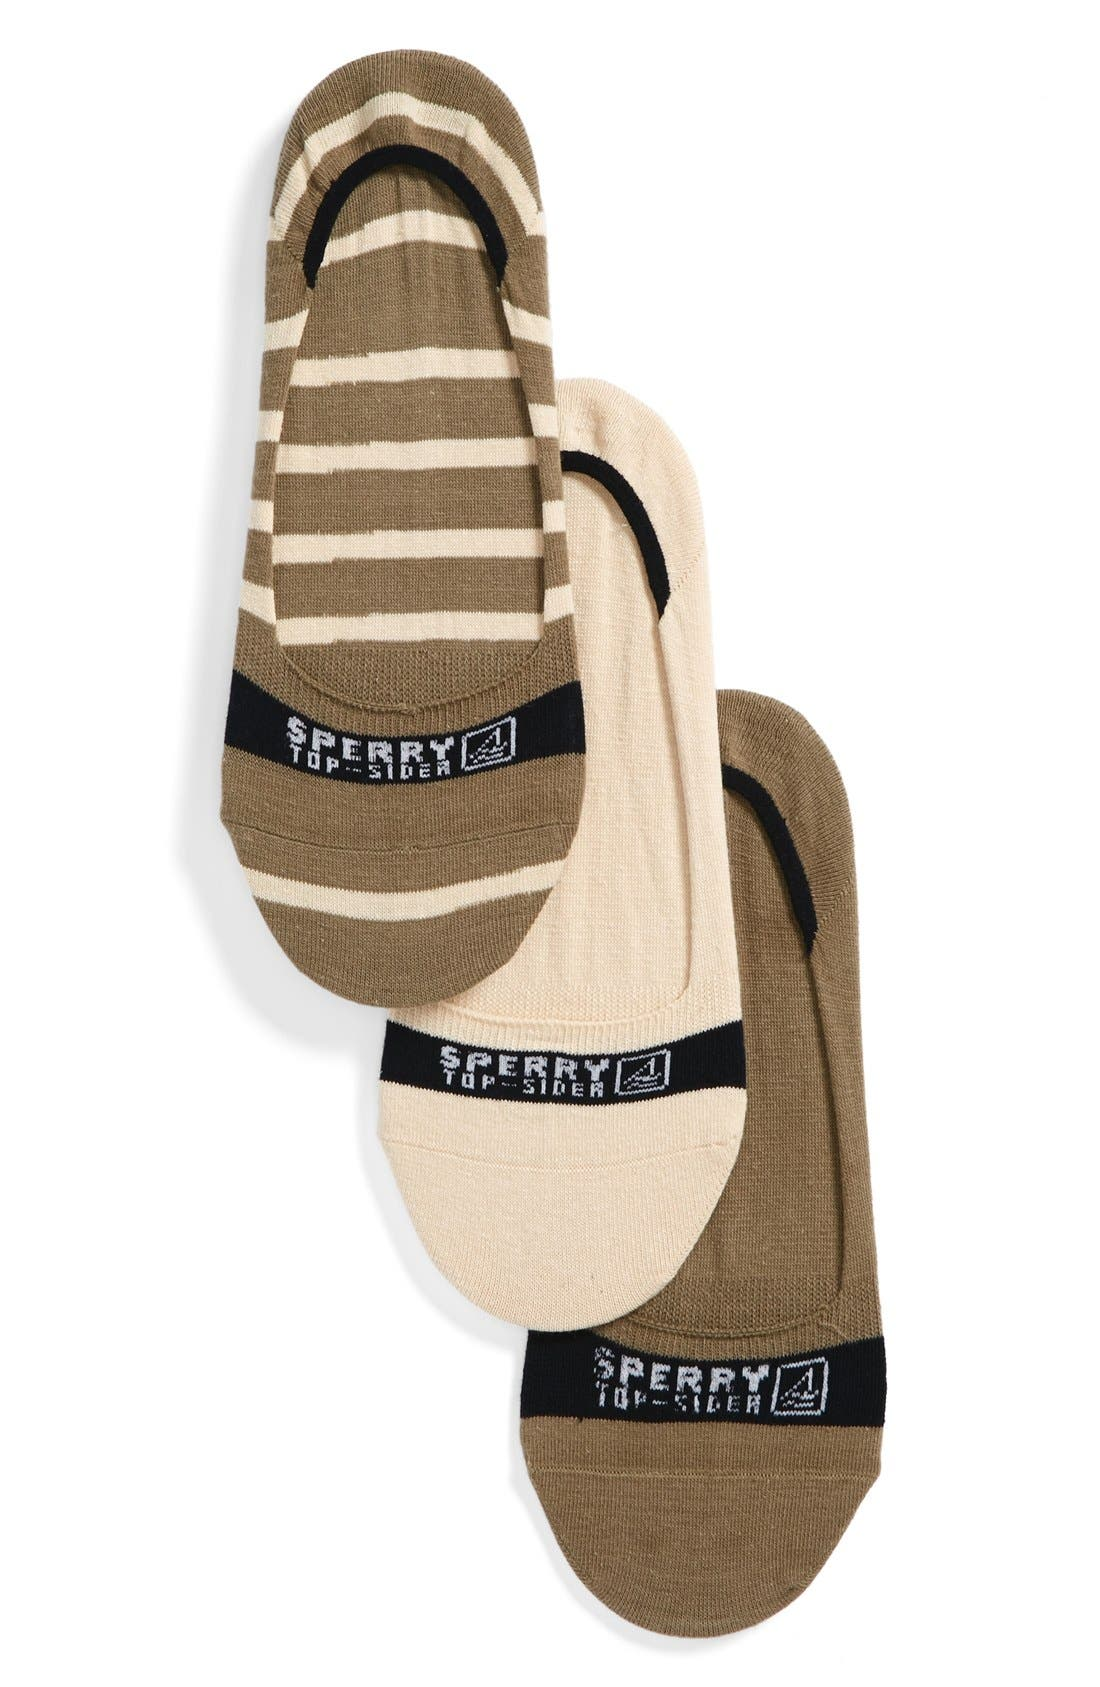 Sperry Signature Invisible Assorted 3-Pack Socks